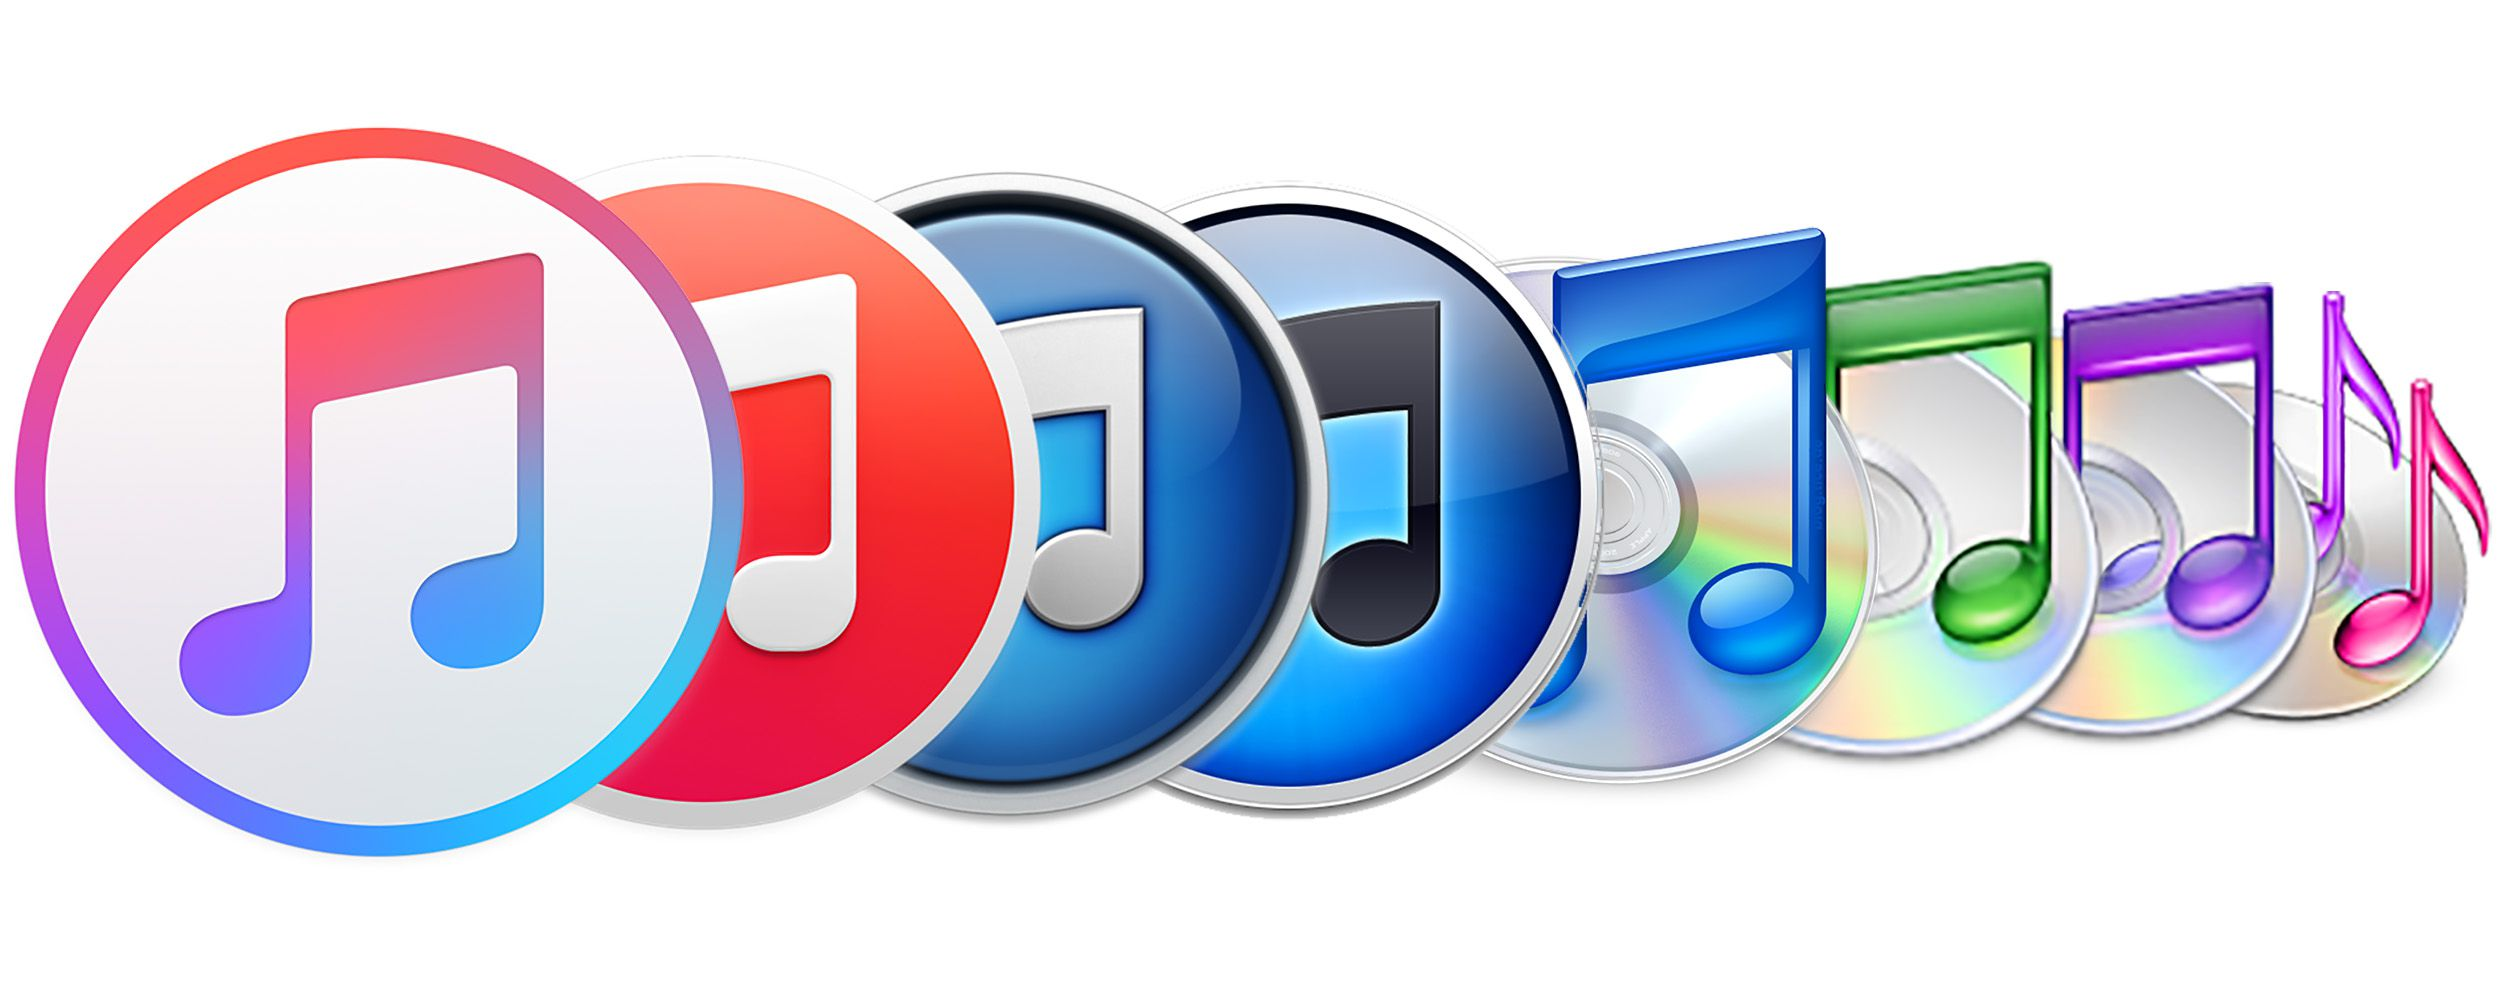 The Evolution of iTunes, from 1 0 to Today